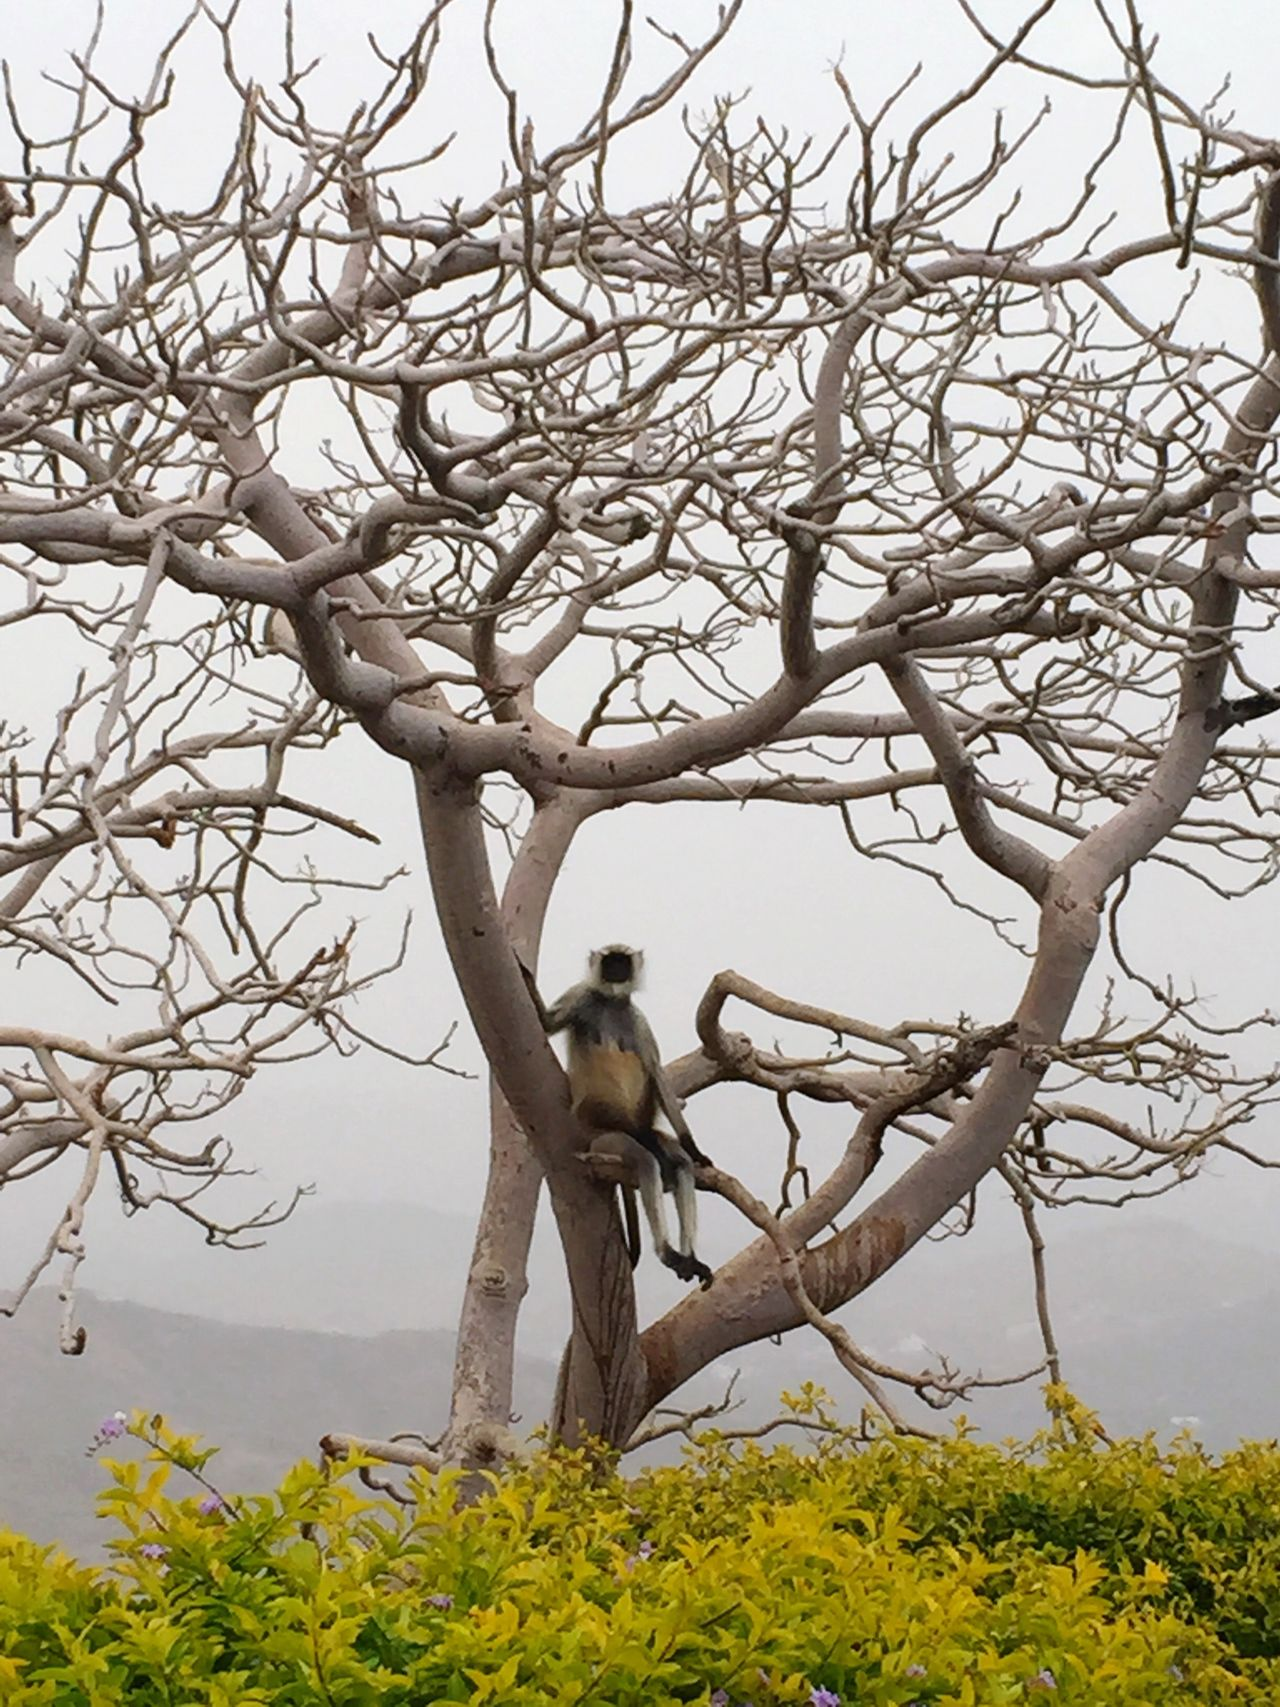 EyeEmNewHere Langur Monkey Gray Langur Monkey Black Face Monkey Monkey In A Tree Monkey Sitting Tree Wildlife Animals Animals In The Wild Udaipur Udaipur. India India One Animal Branch Bare Tree Mammal No People The Great Outdoors - 2017 EyeEm Awards BYOPaper!